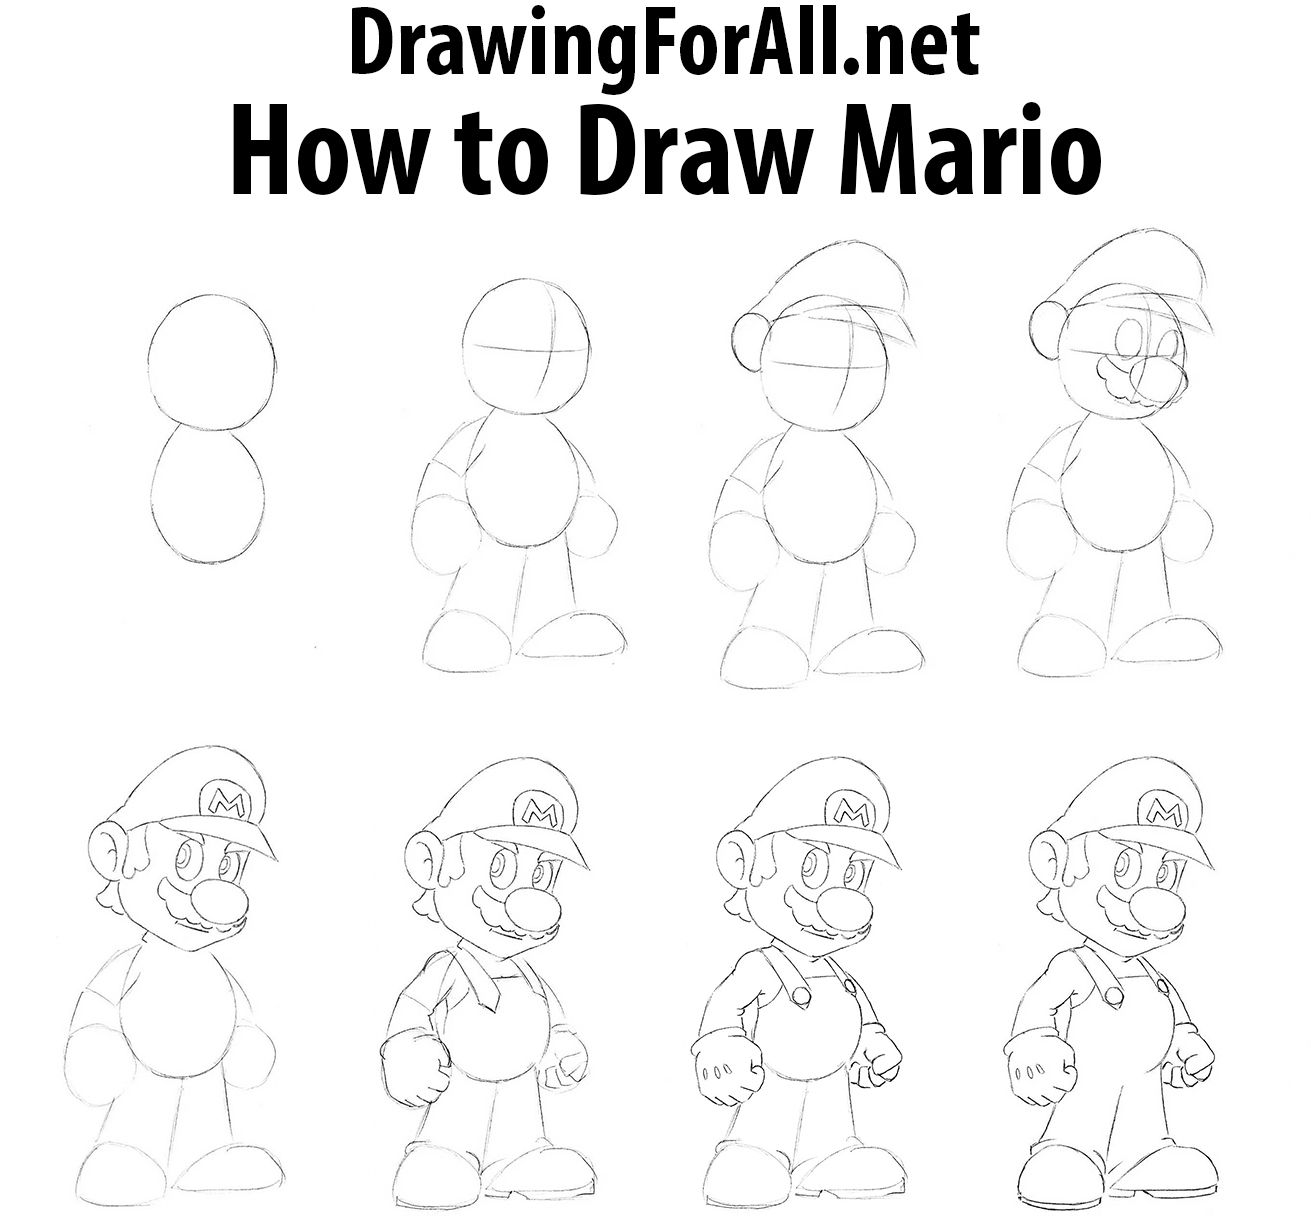 Pin By Johanna Kleideiter On Dessin How To Draw Mario Easy Disney Drawings Drawings